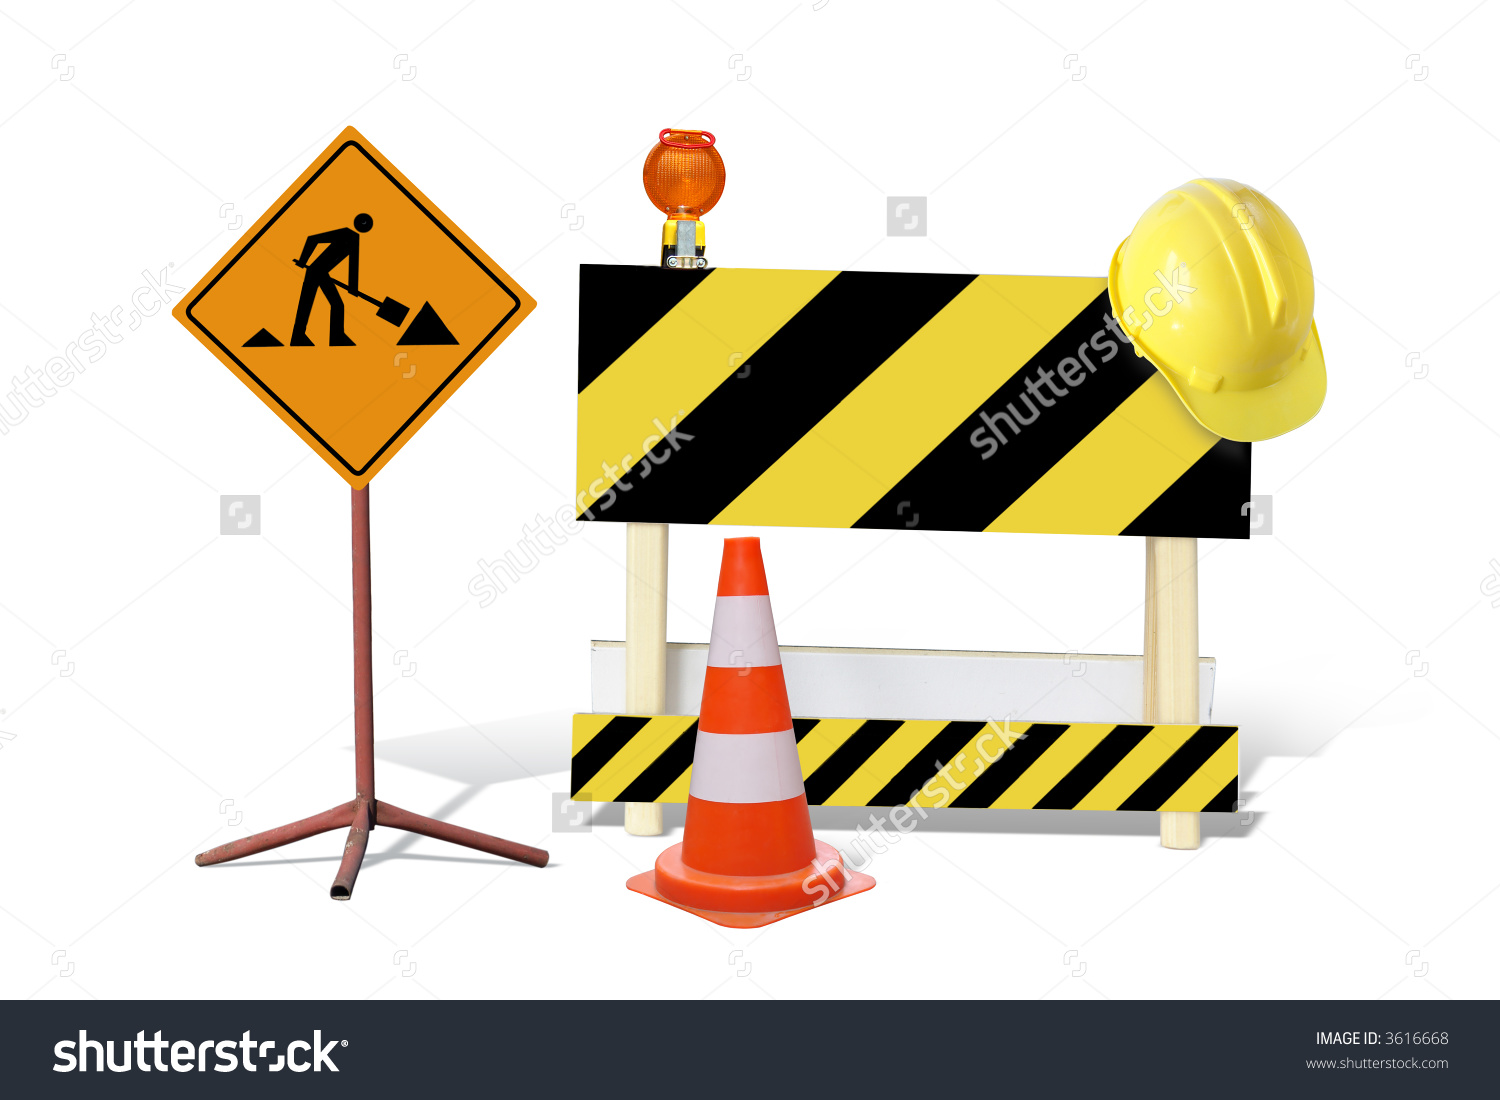 Road Construction Sign Yellow Black Striped Stock Photo 3616668.